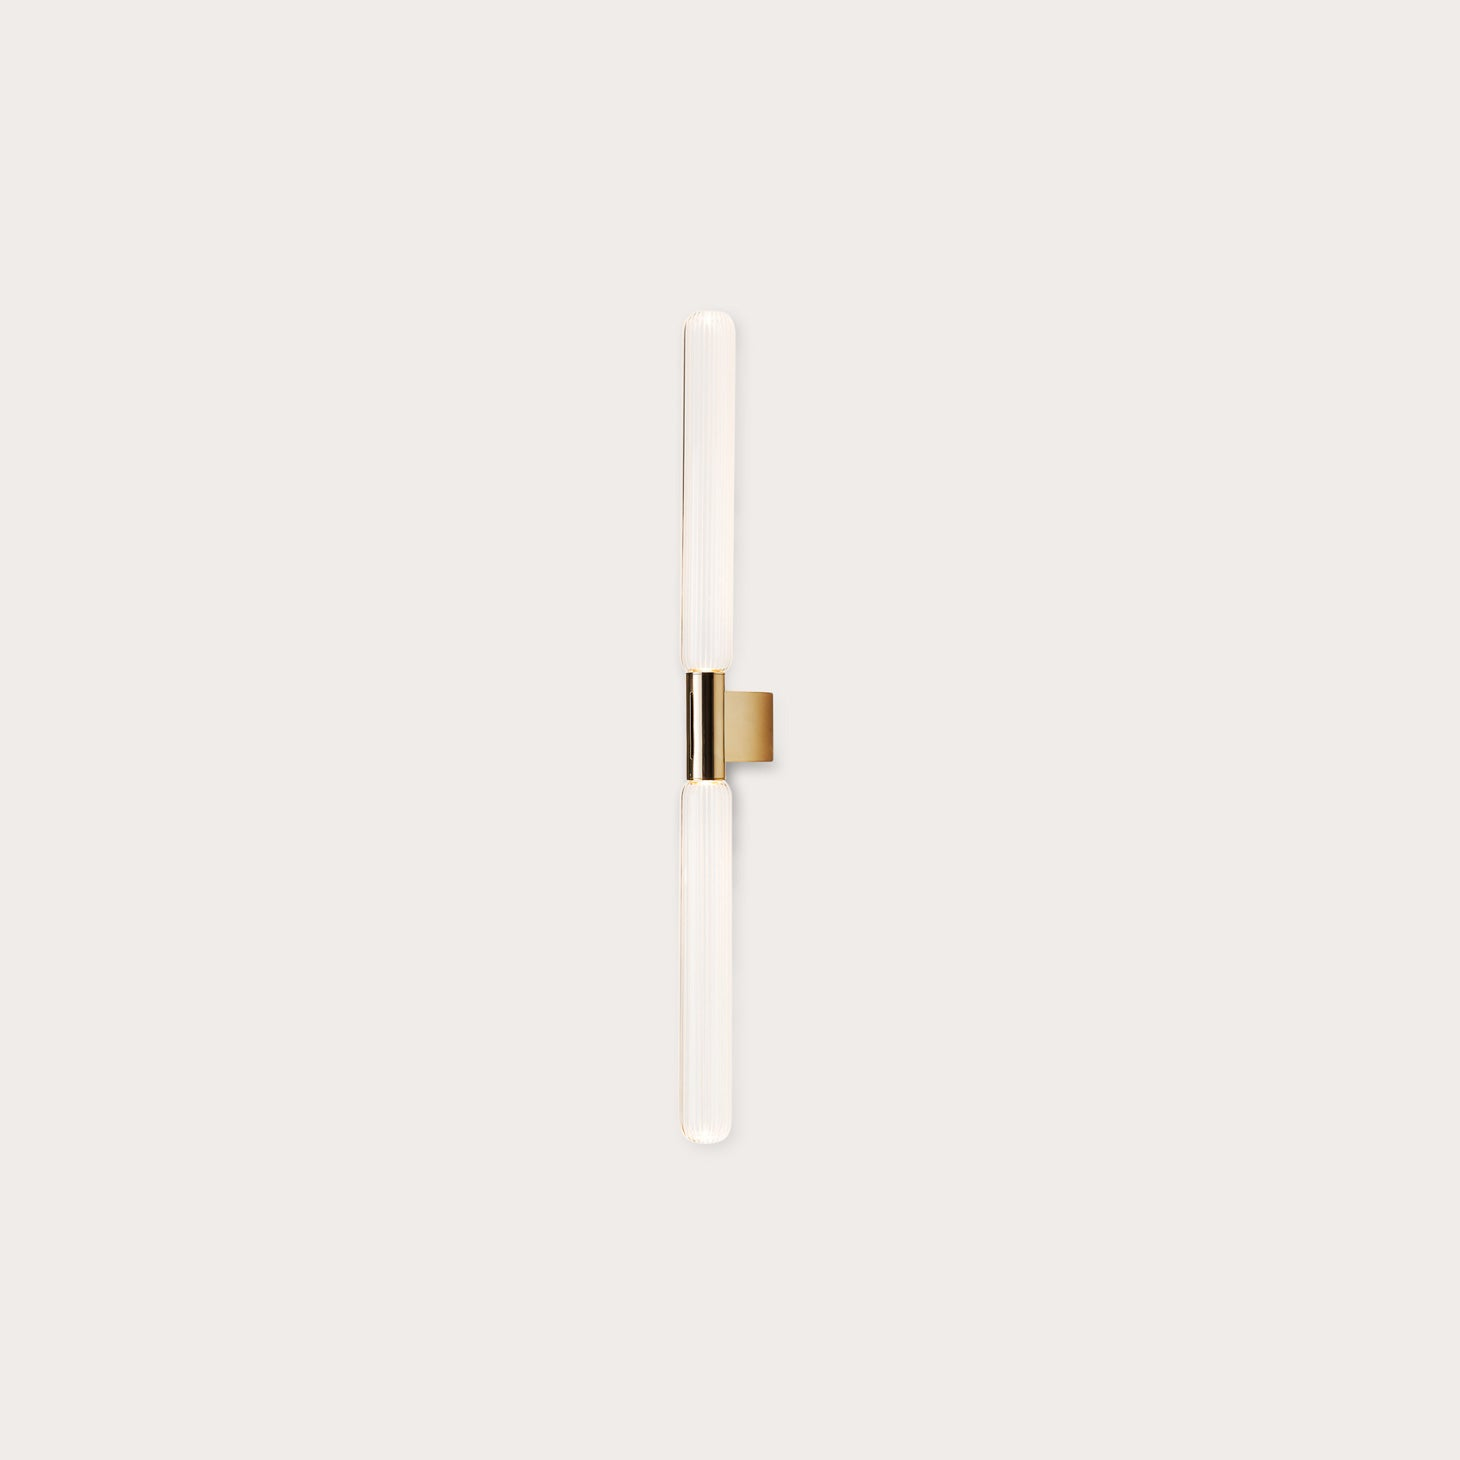 Cipher Wall Sconce Lighting Yabu Pushelberg Designer Furniture Sku: 110-160-10005